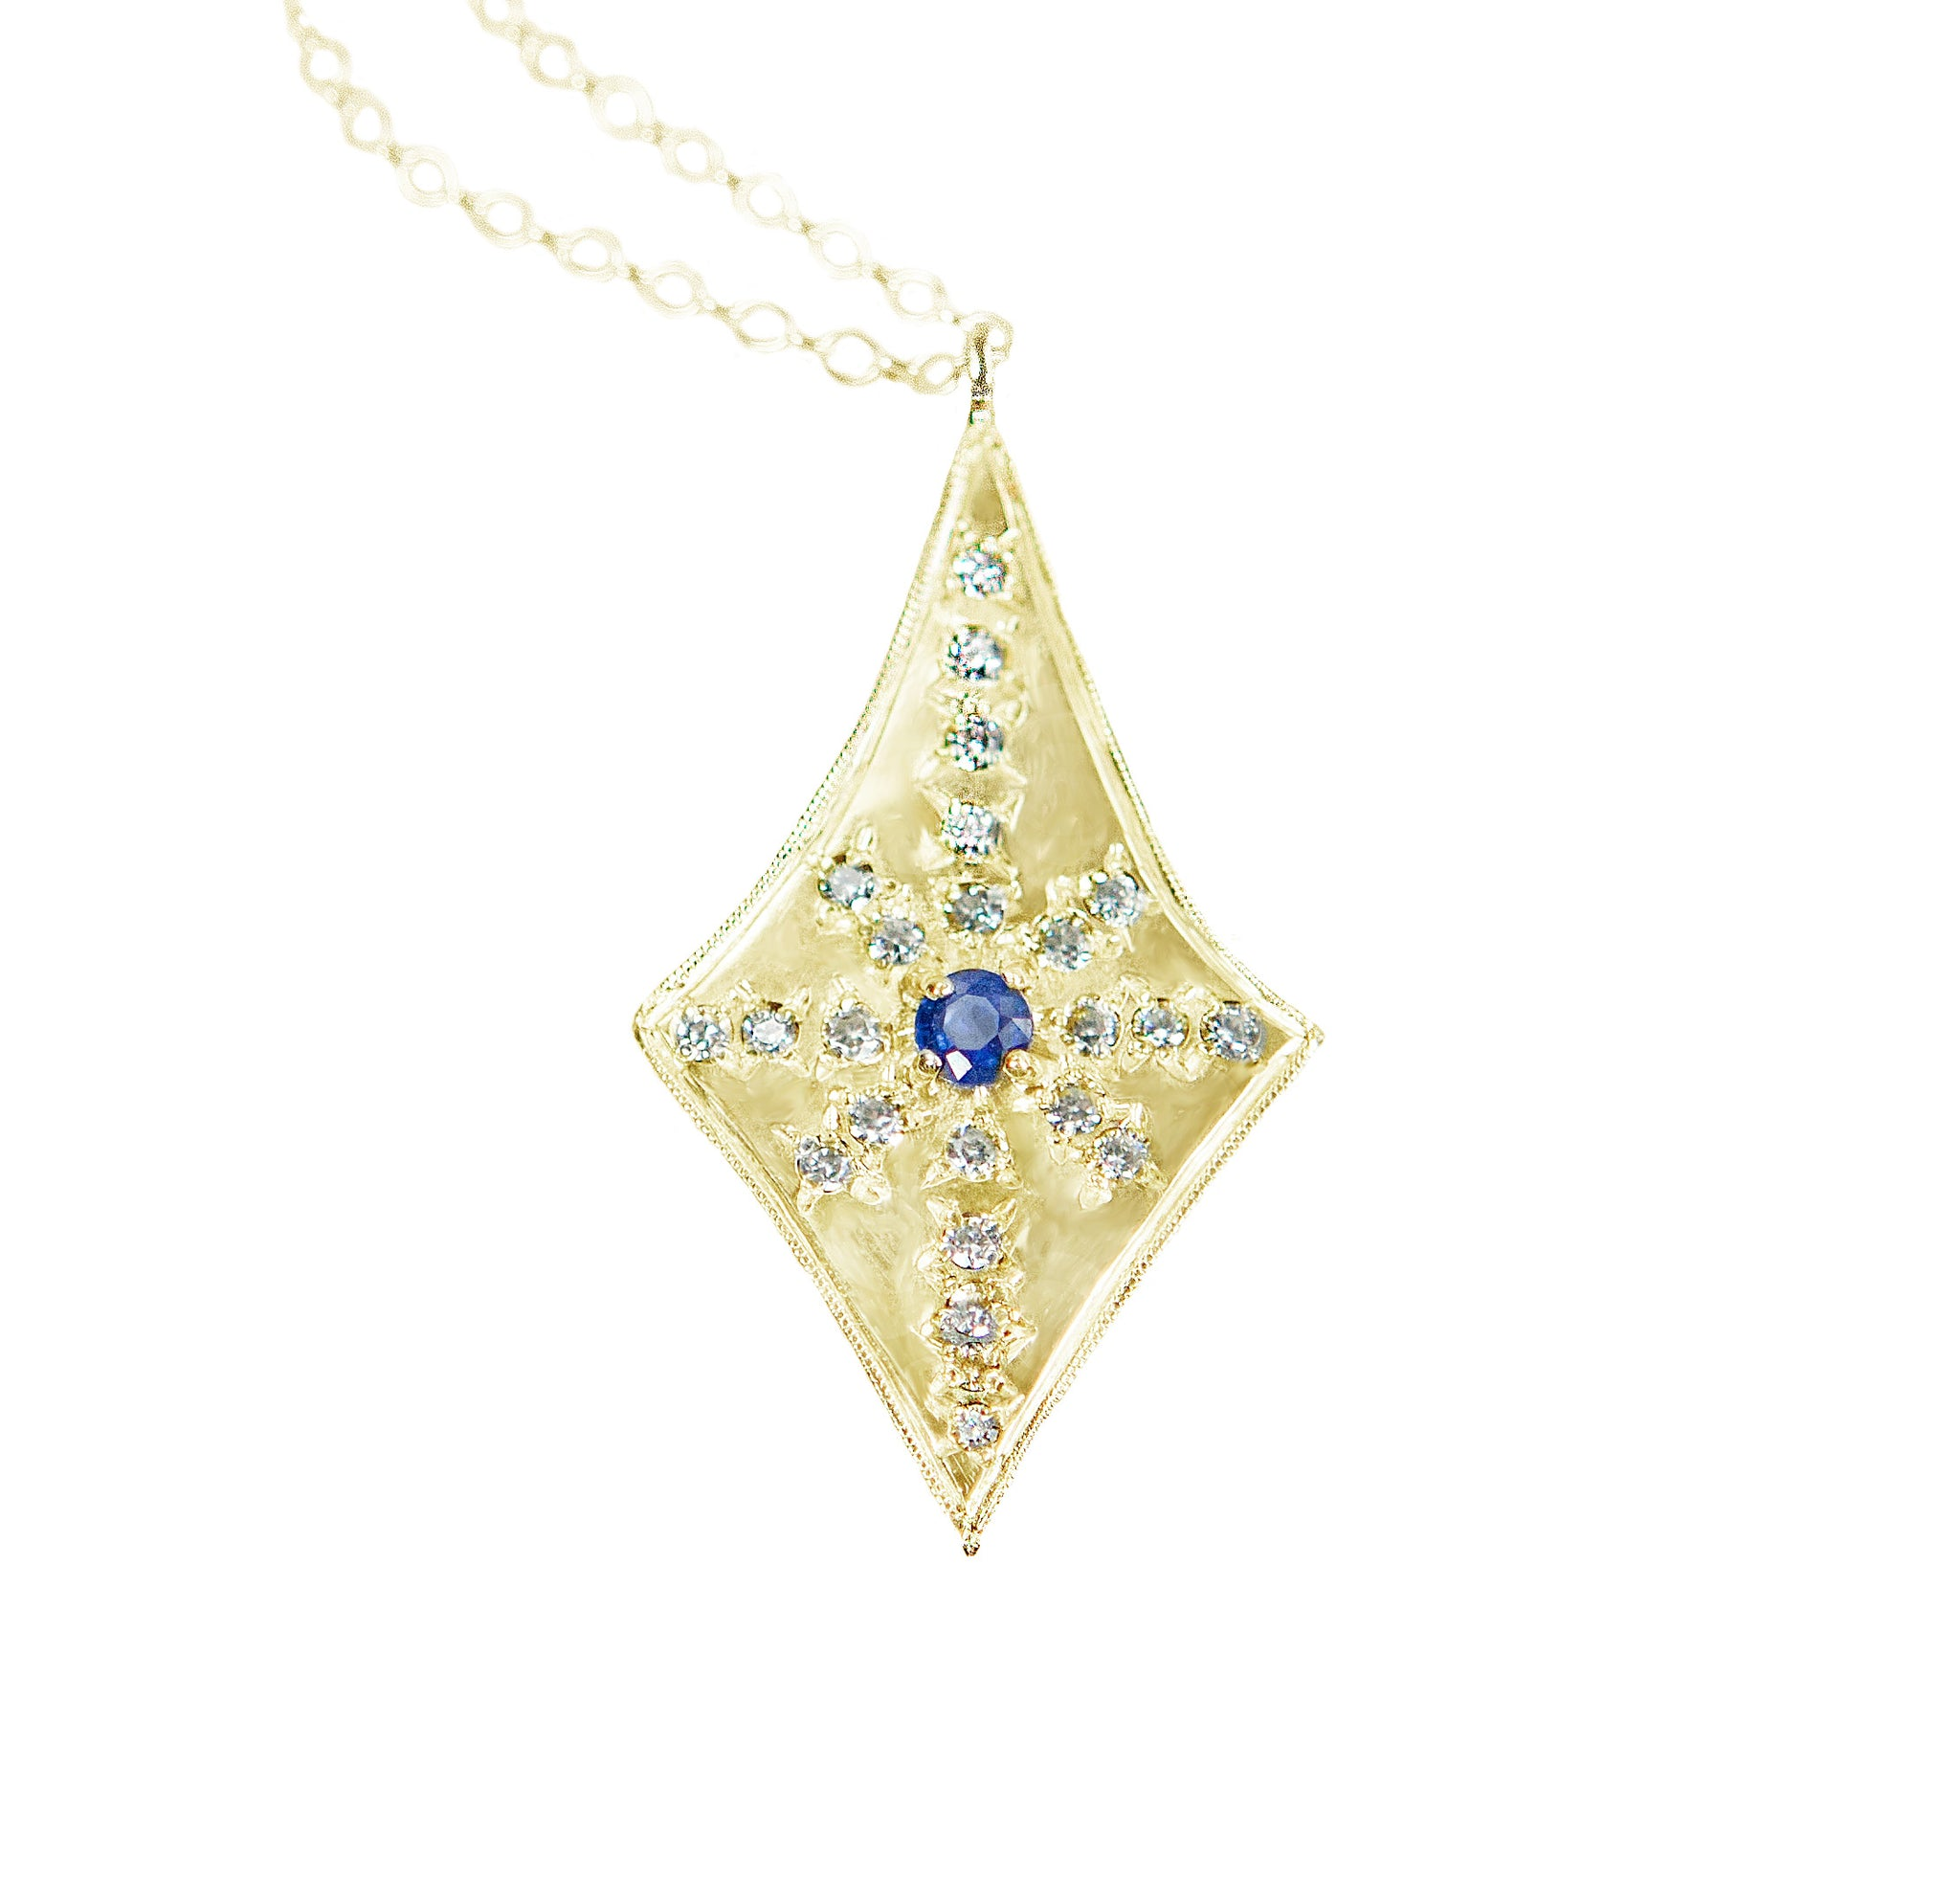 Santuari Sapphire and Diamond Teardrop Necklace